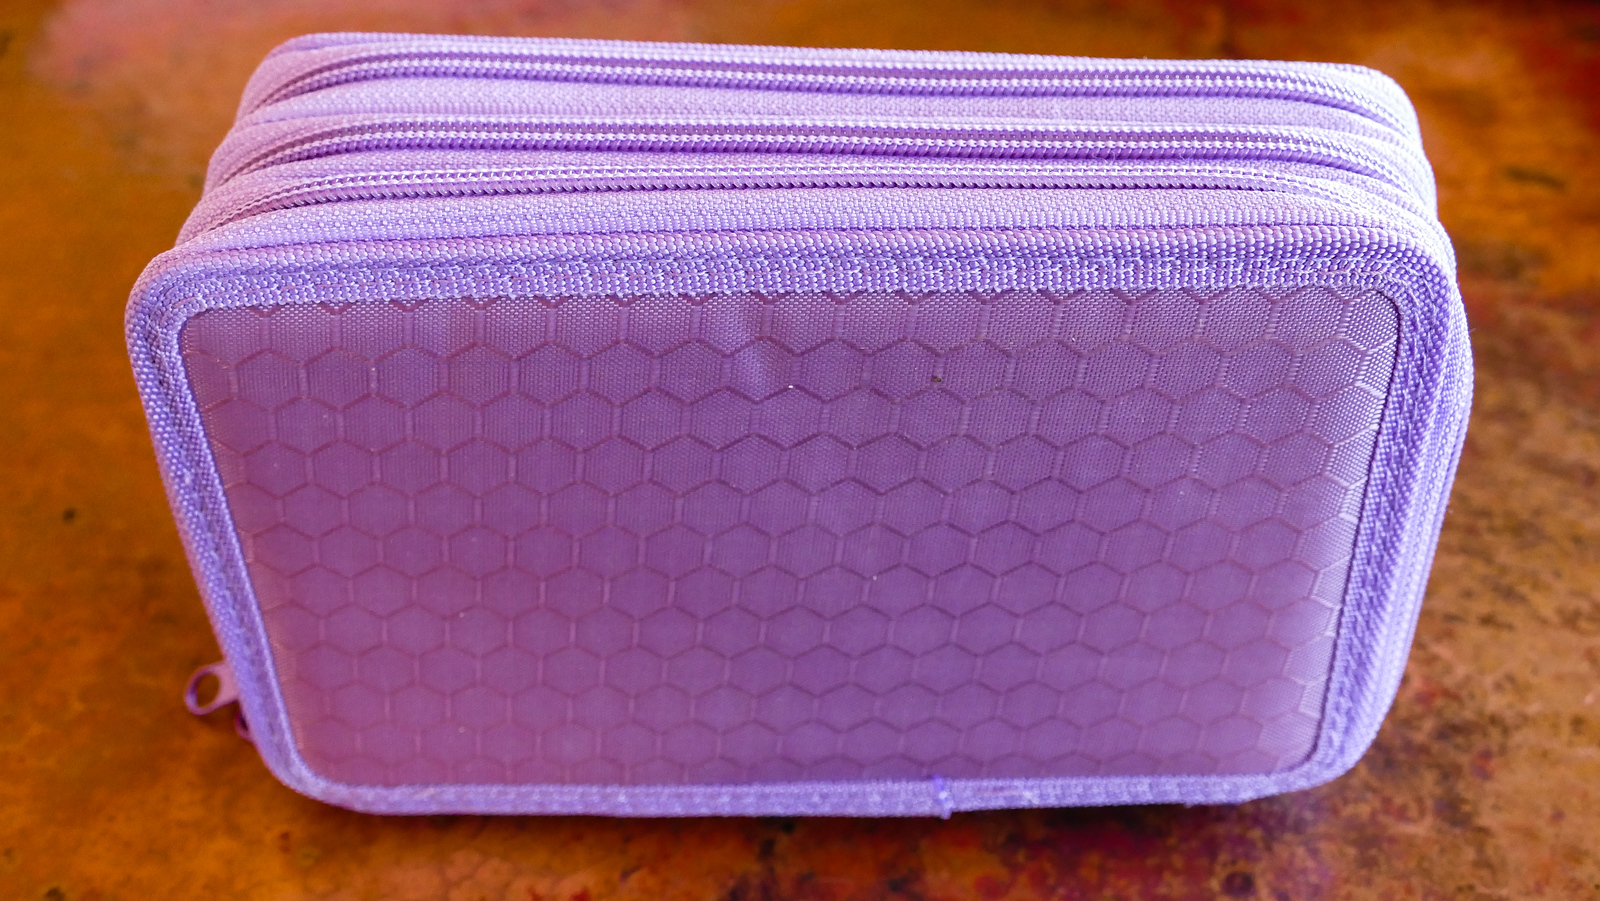 My purple pencil carrying case holds 72 pencils. I take it on longer trips.